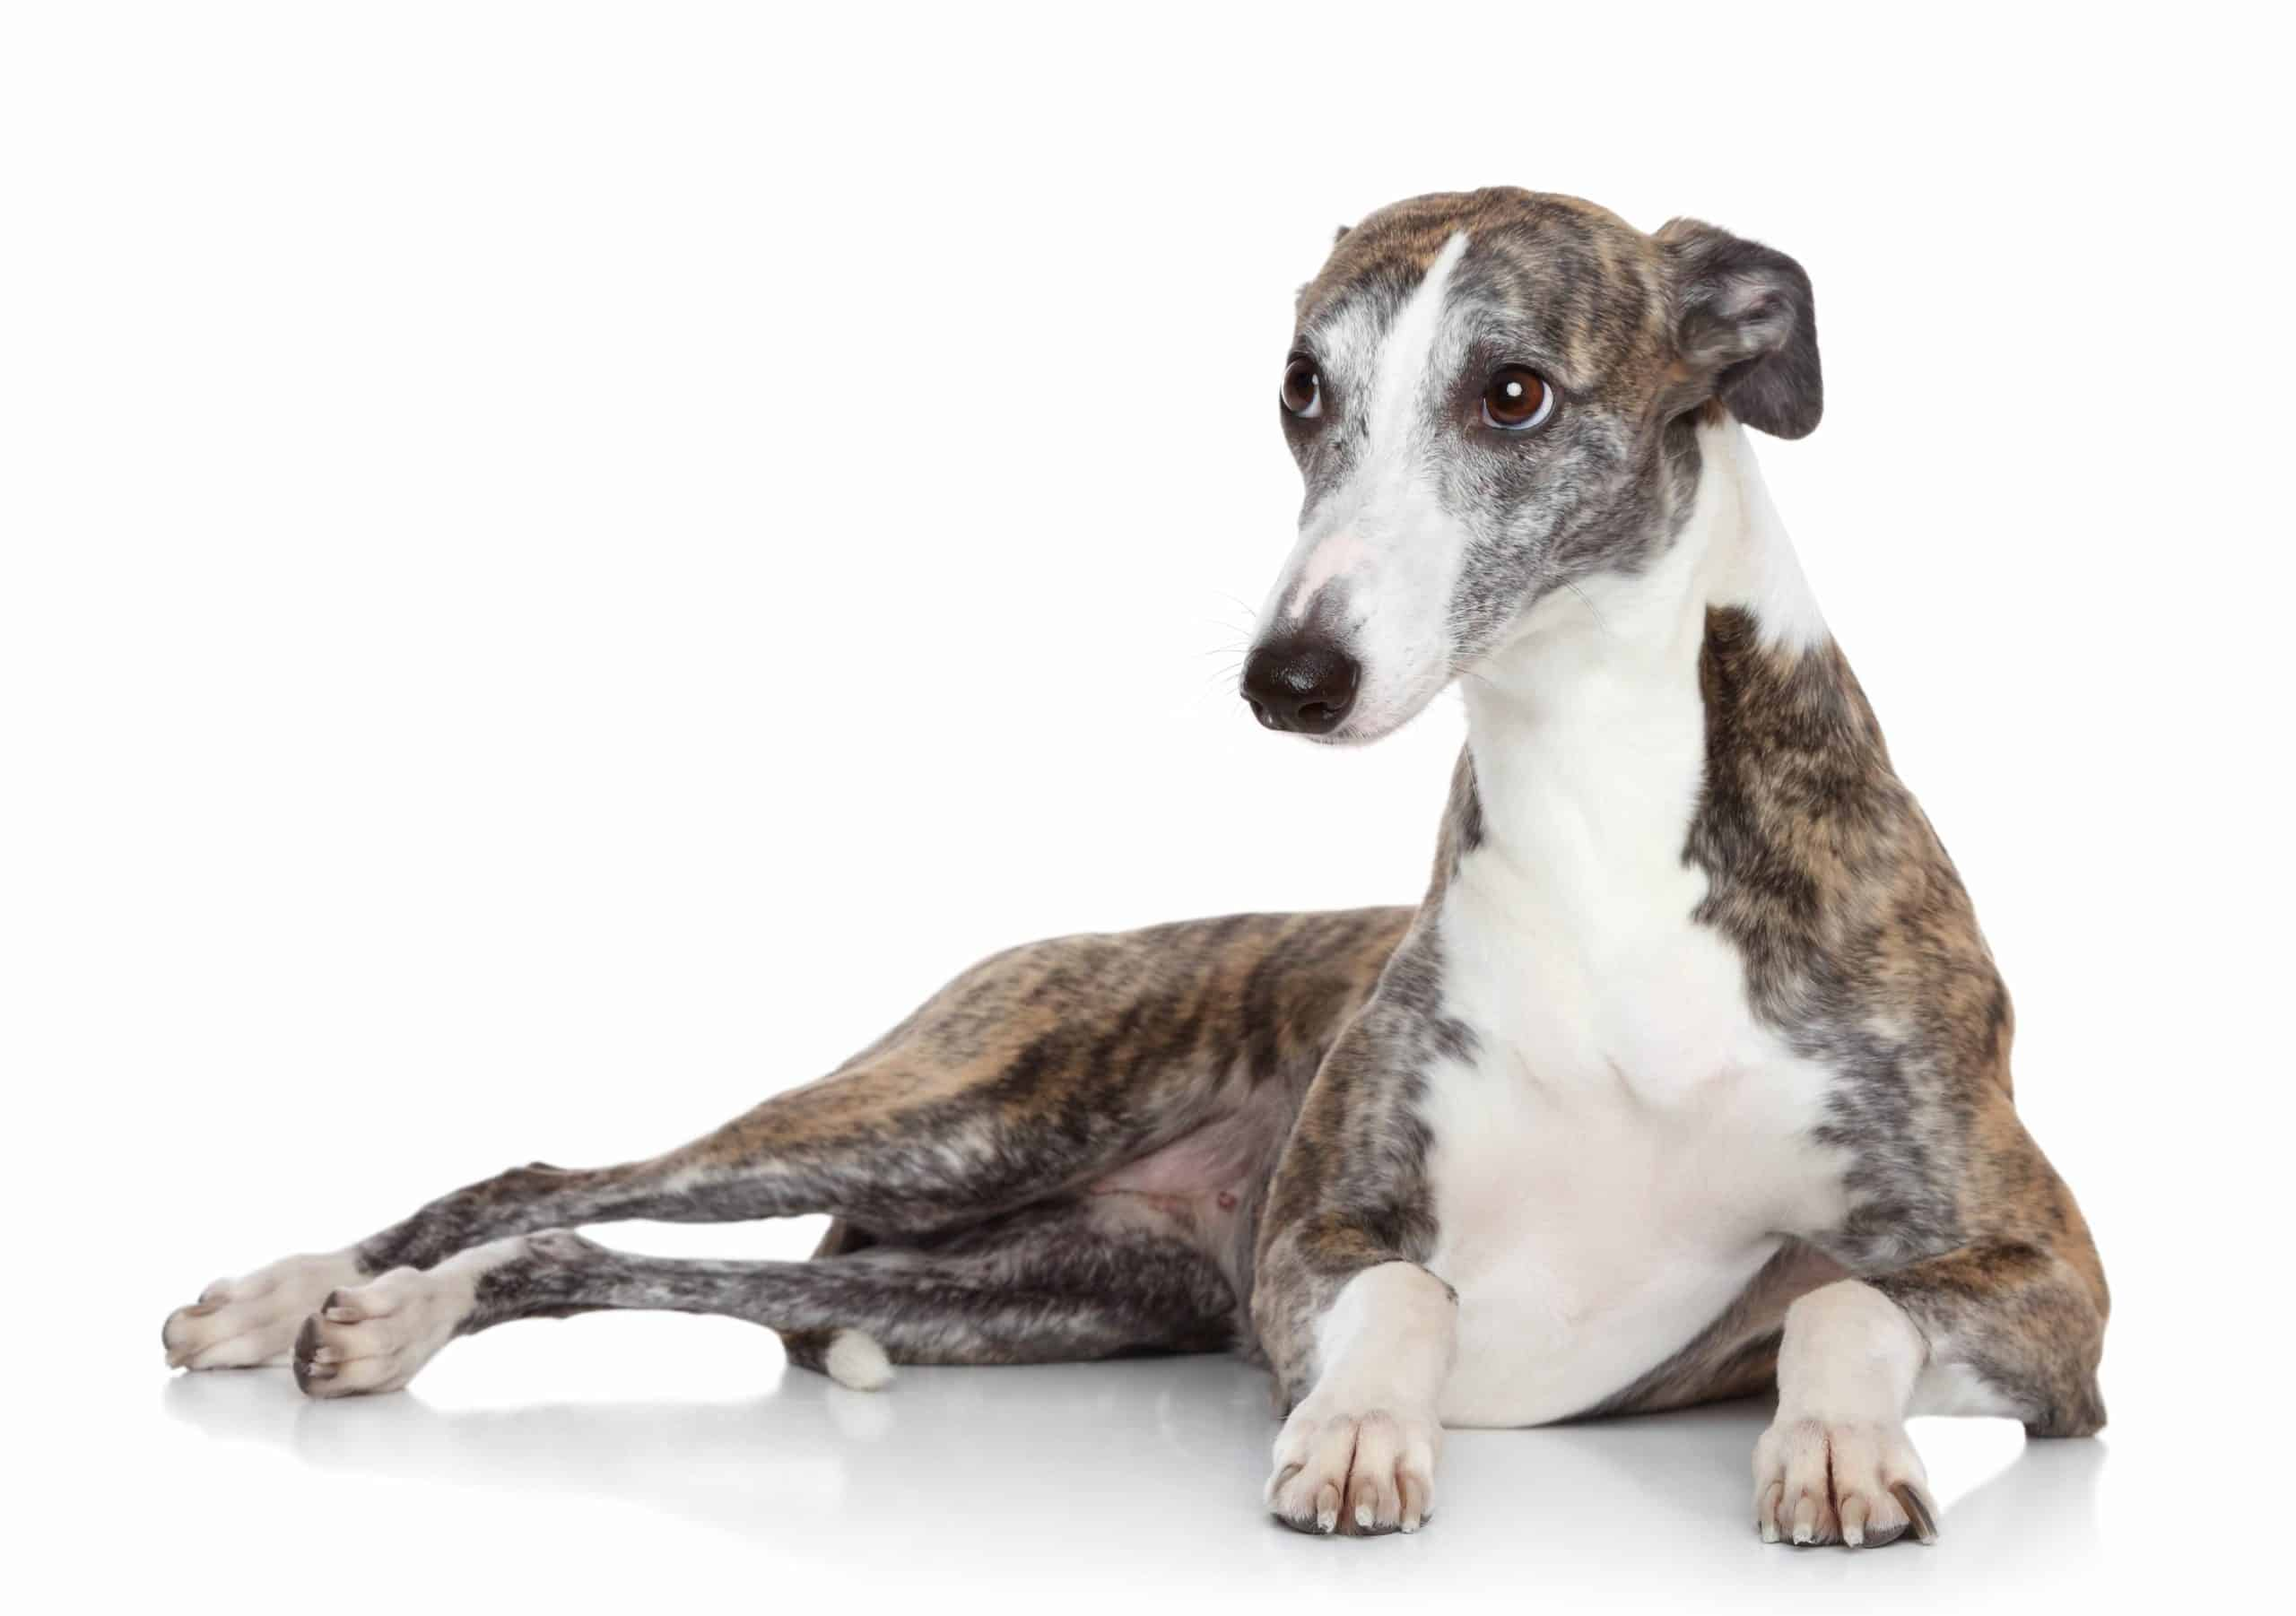 Italian greyhound lounges on white background. Play and physical exercise help keep Italian greyhounds fit and engaged.